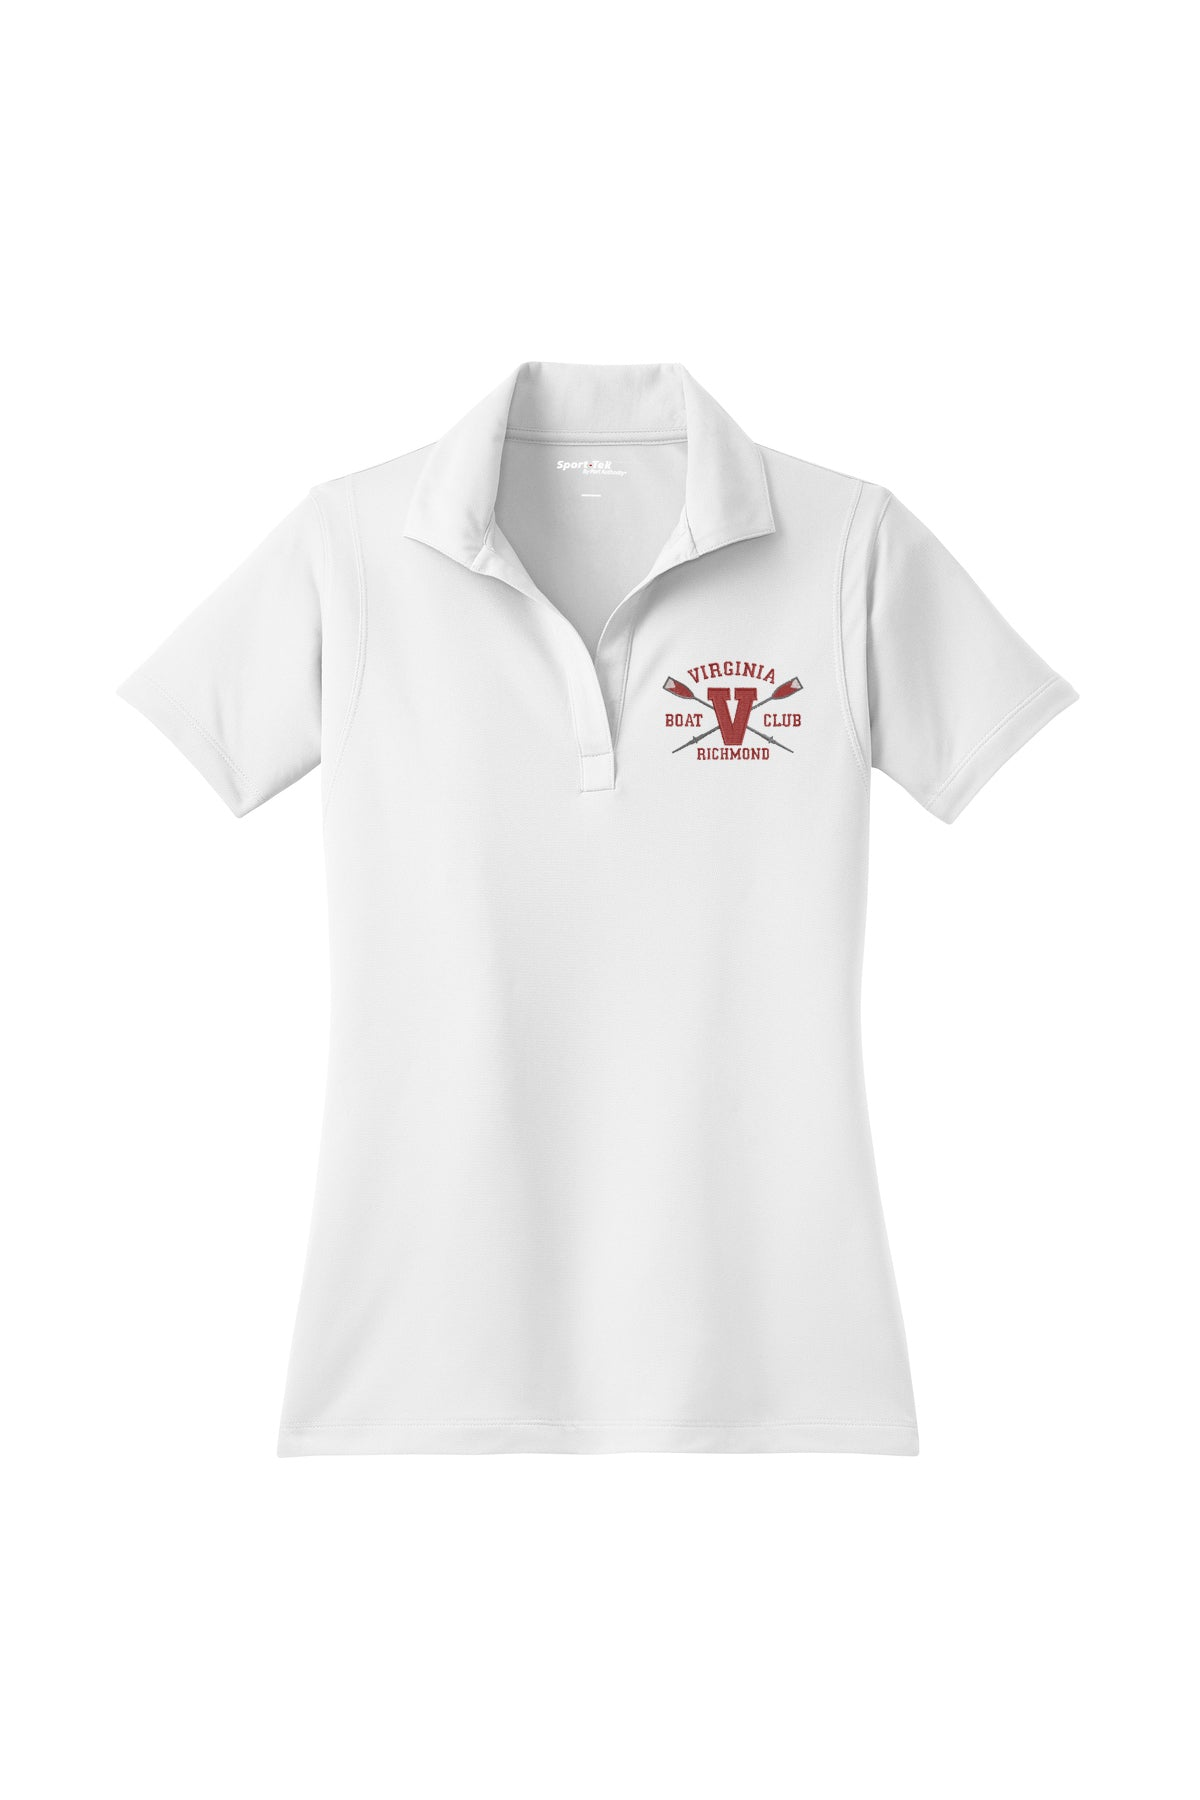 Virginia Boat Club Embroidered Performance Ladies Polo